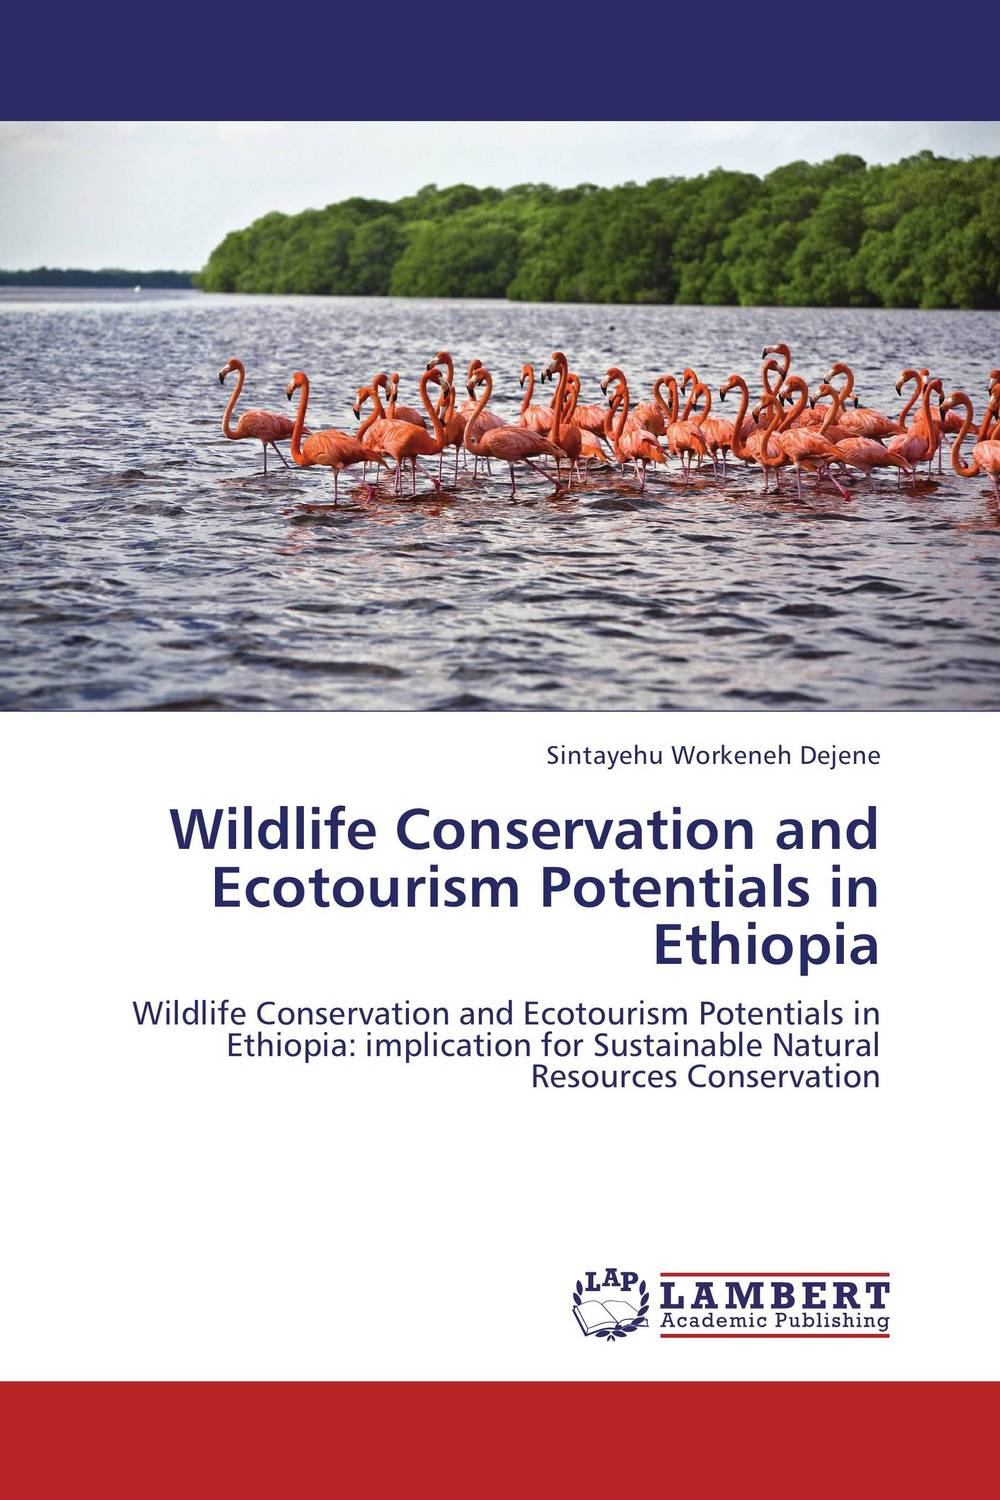 Wildlife Conservation and Ecotourism Potentials in Ethiopia